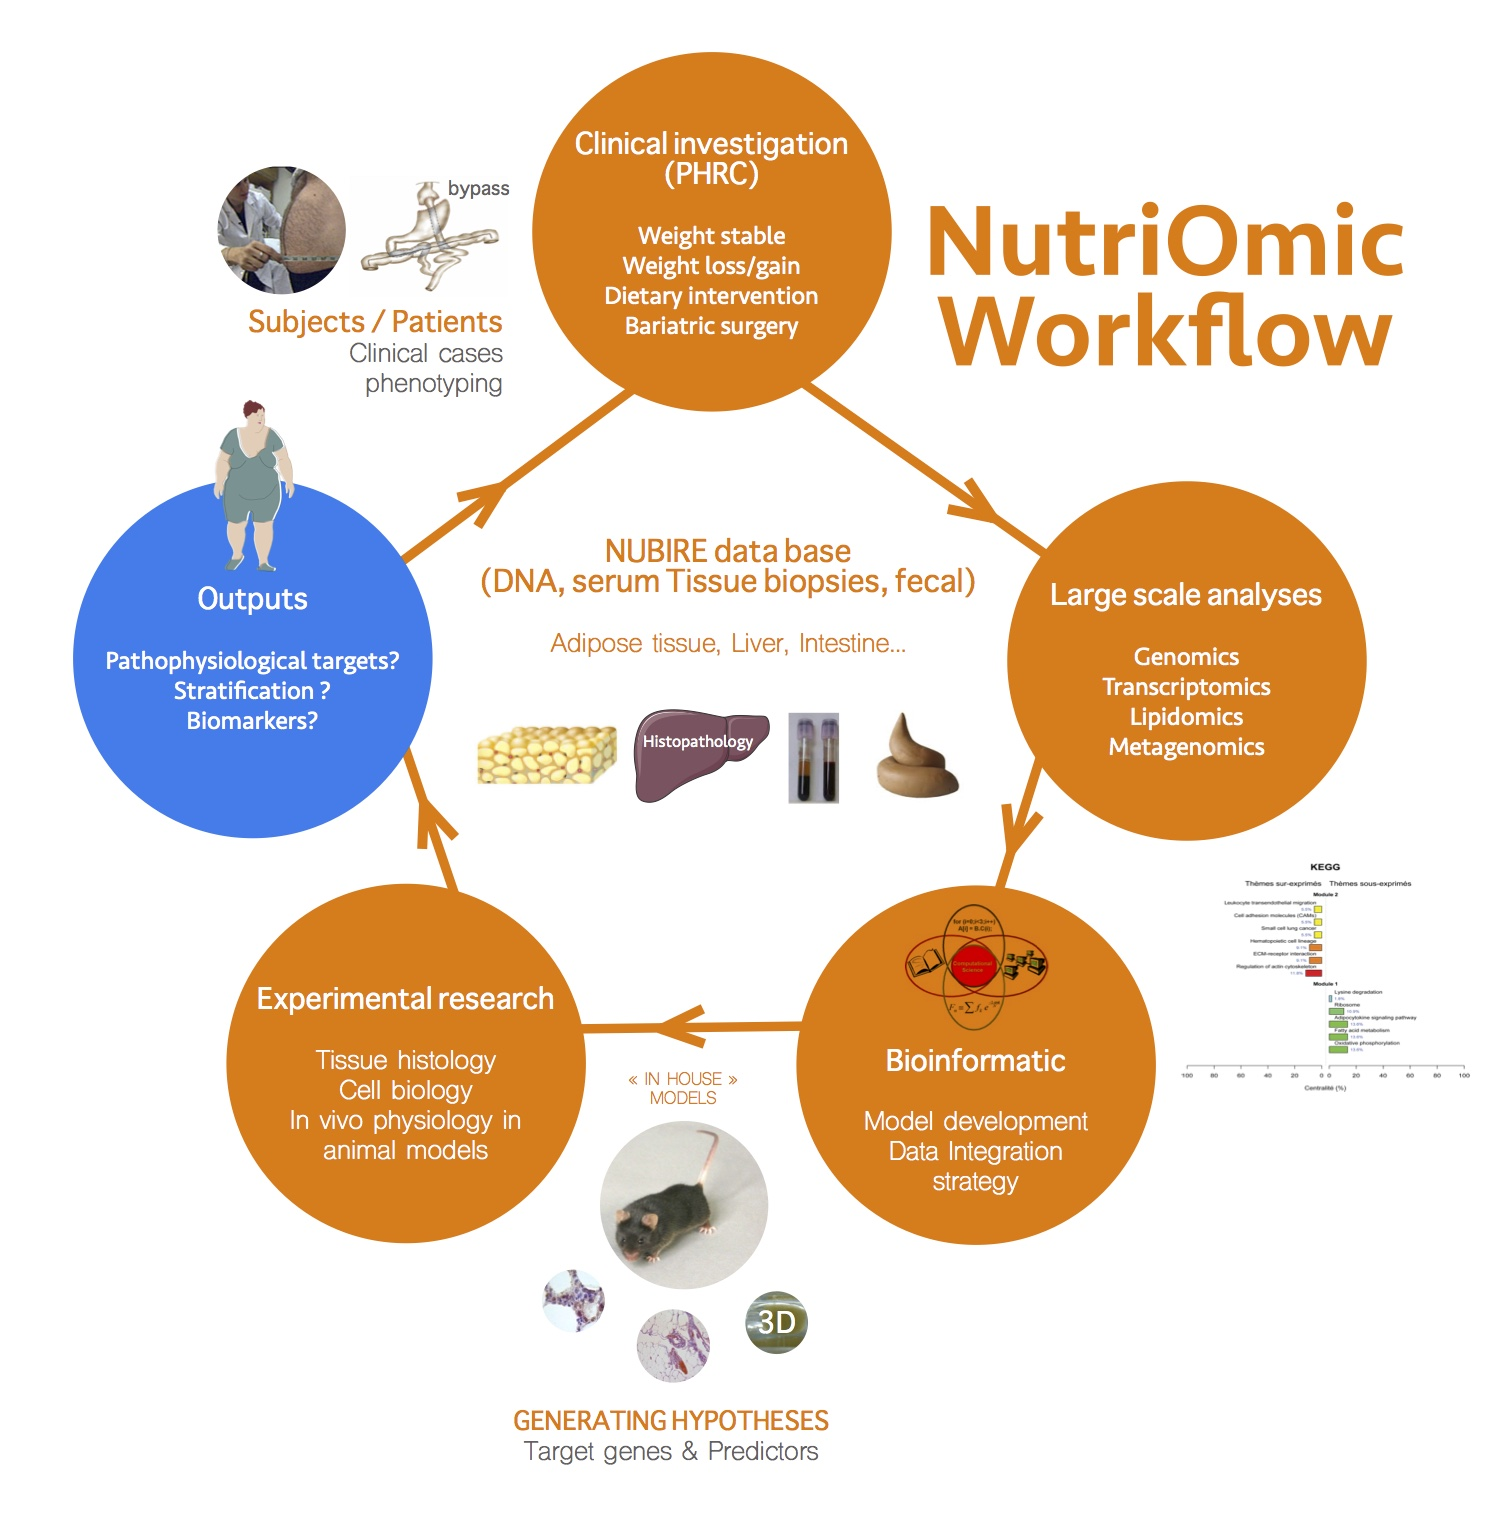 Nutriomics, Team Workflow